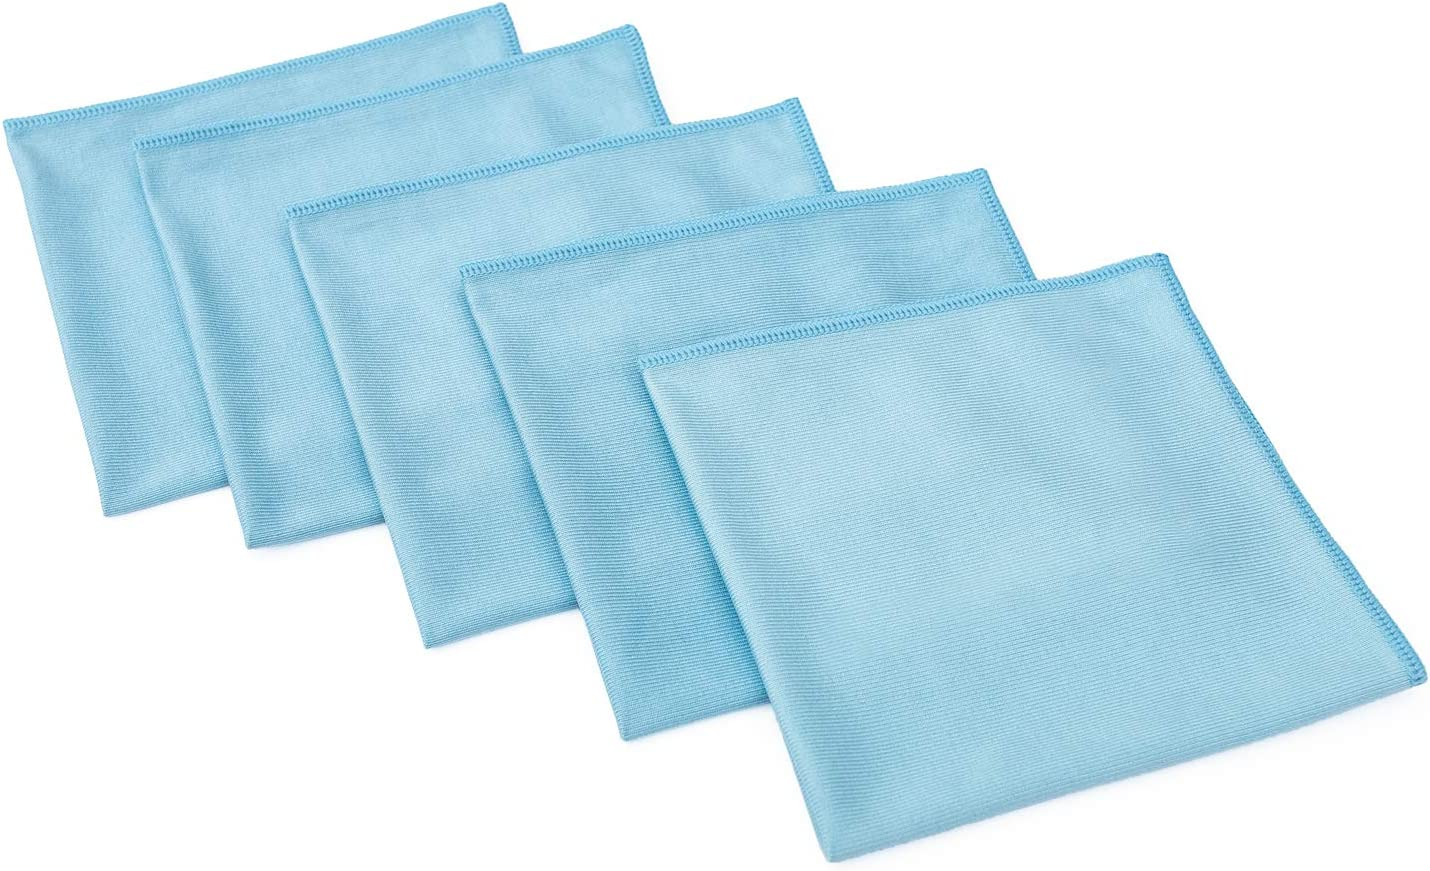 THE RAG COMPANY Professional Window Cleaning Cloths